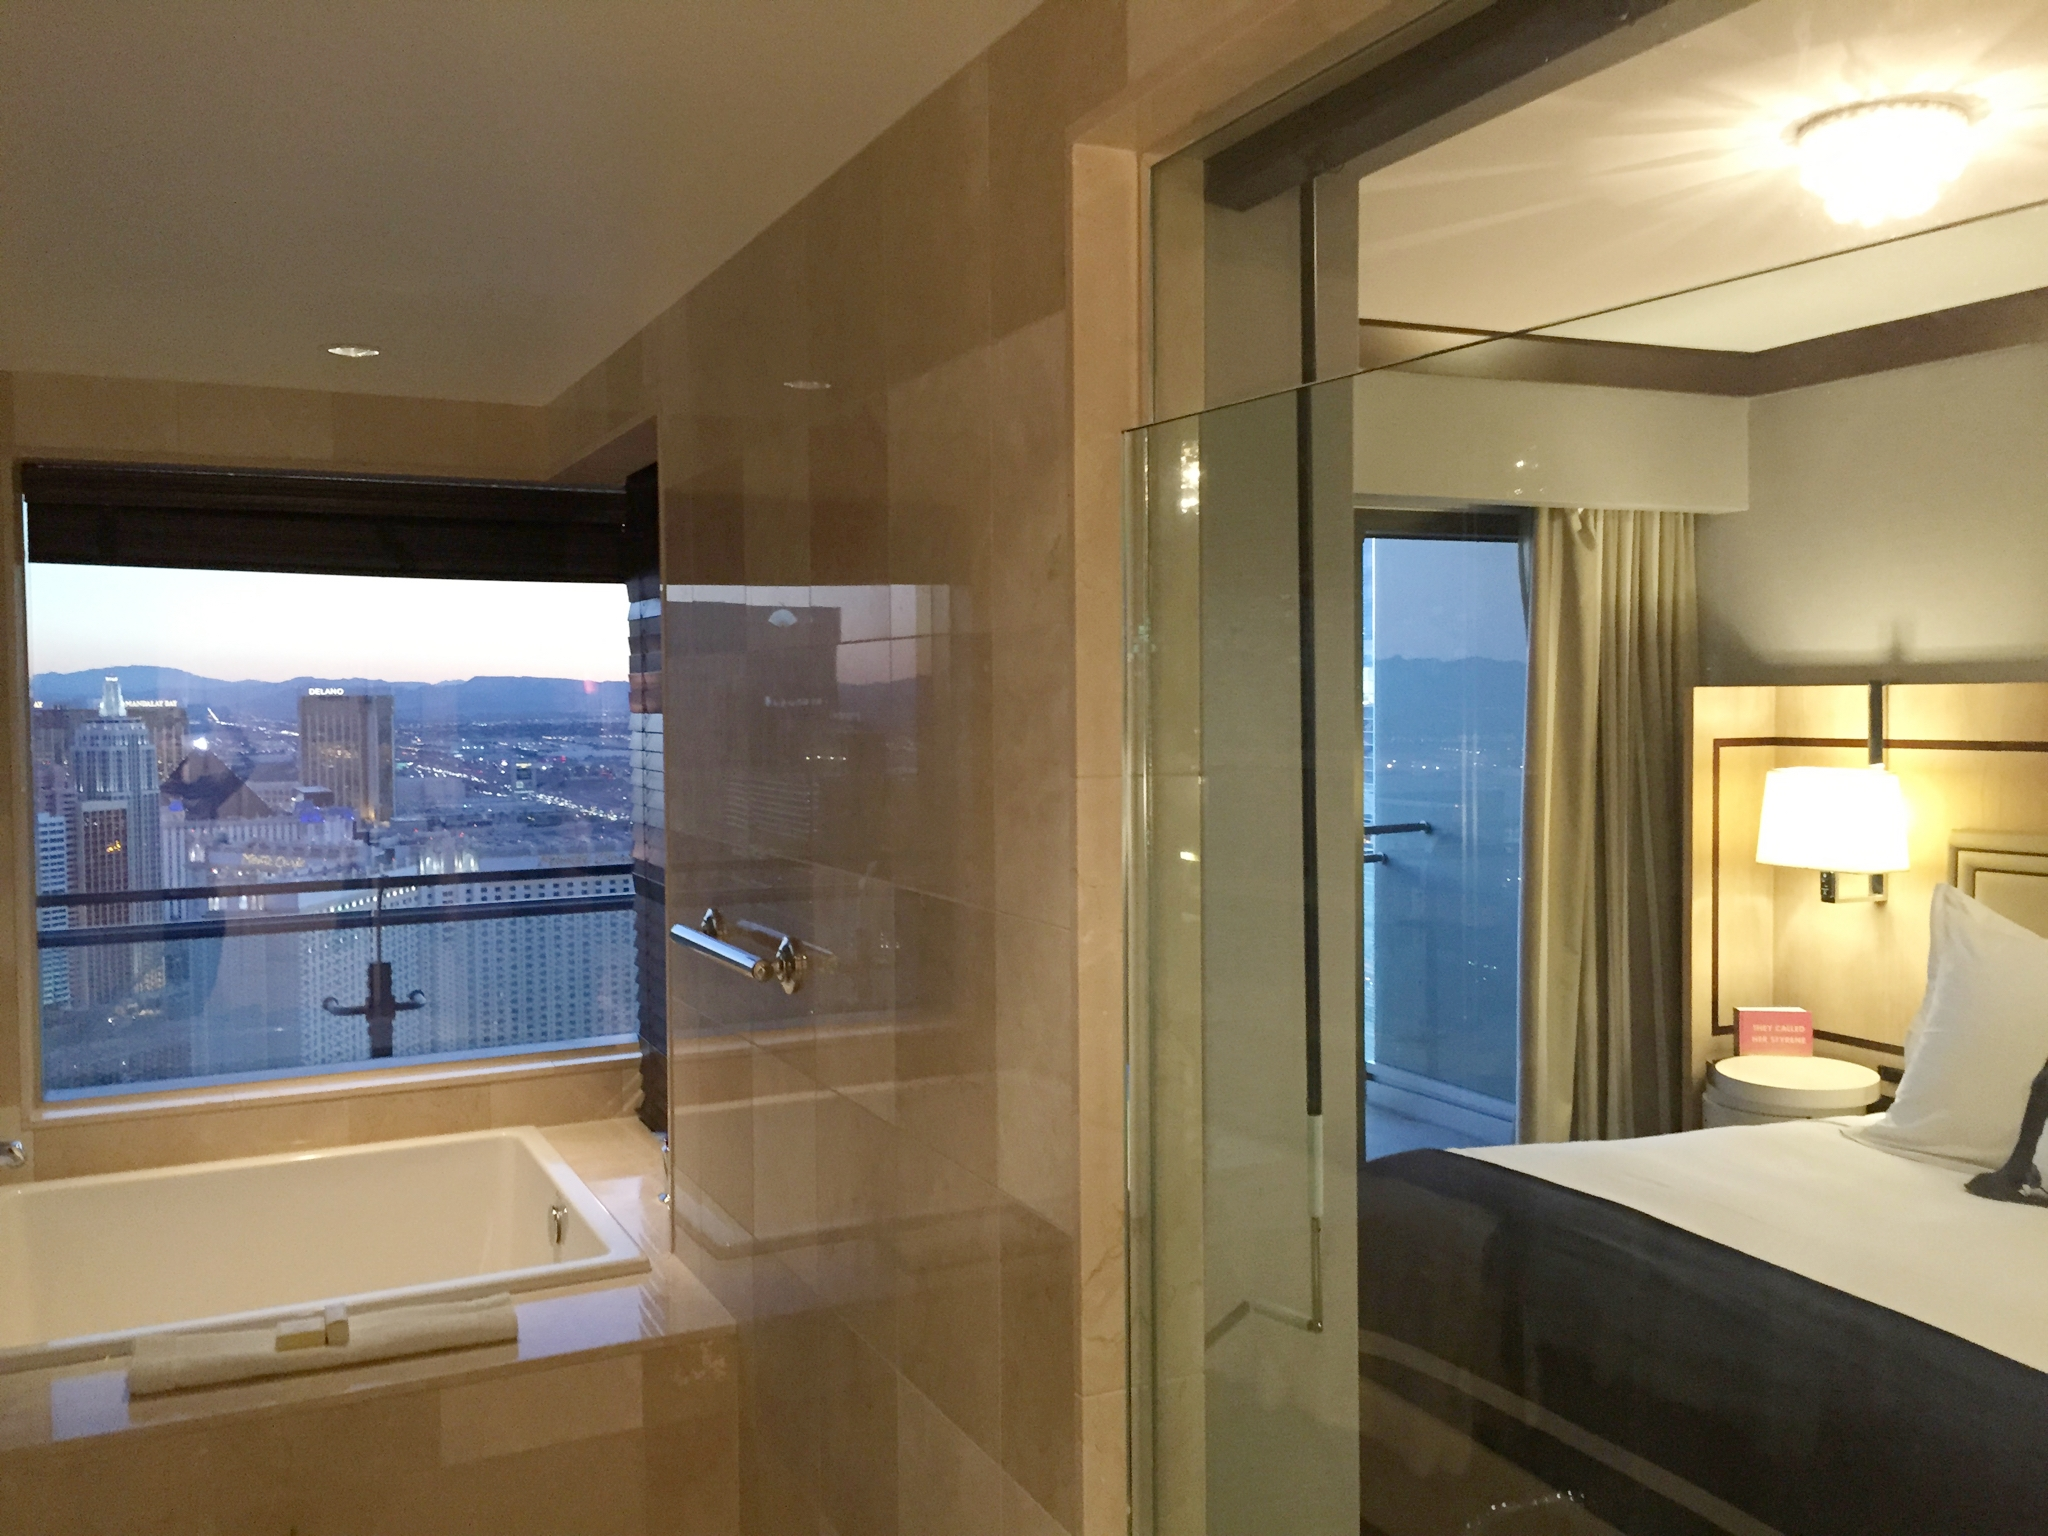 In the Cosmopolitan suites, the jacuzzi tubs also have insane views of the strip.